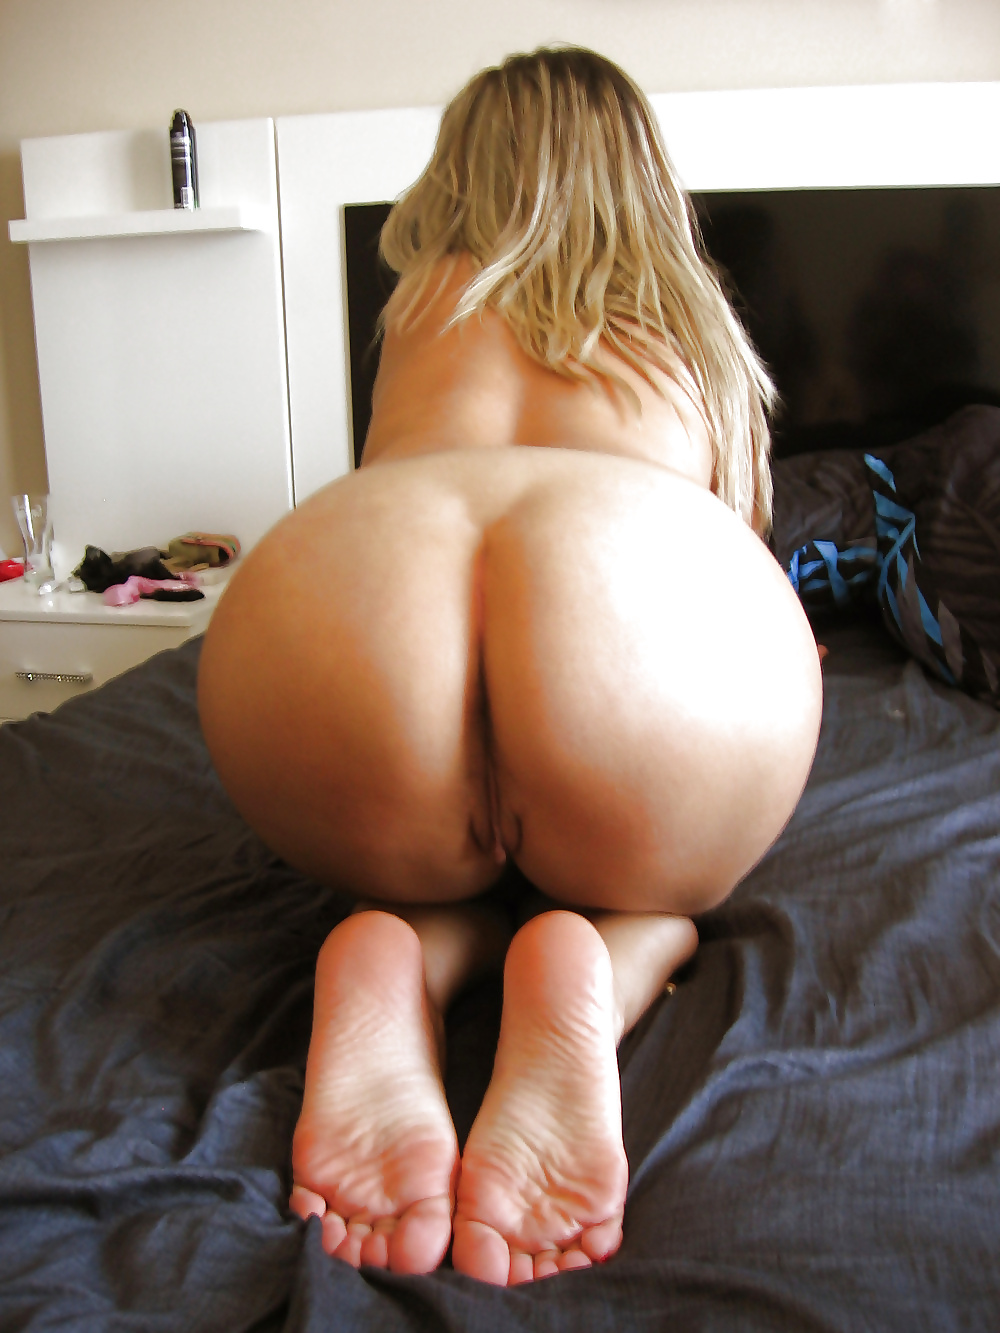 girls ass and feet